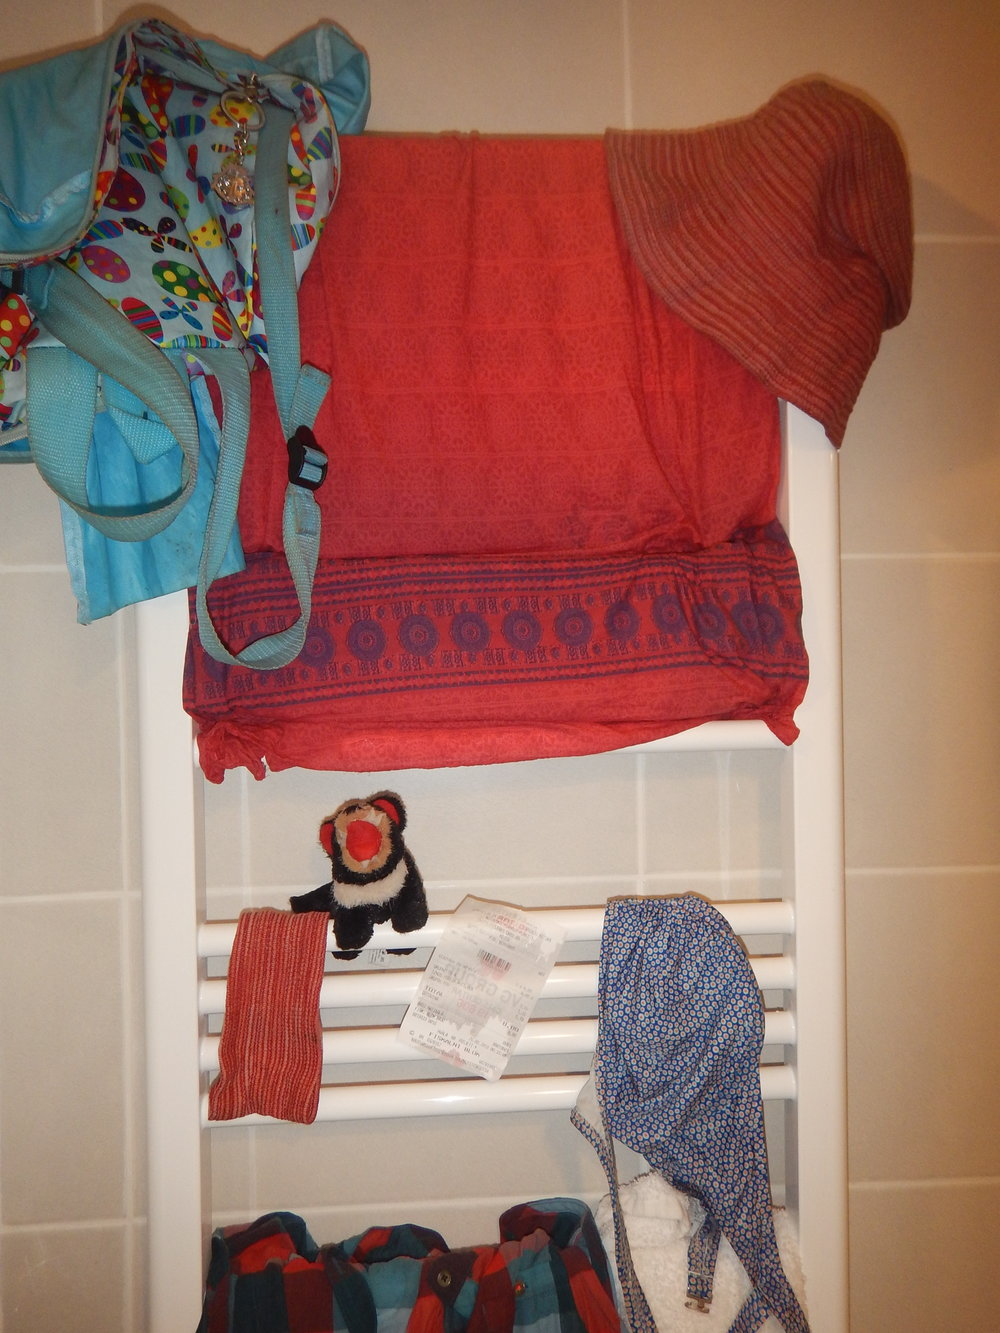 all my wet belongings hanging on the towel drying rack in my bathroom. I even had to wring the water out from poor old Harri.